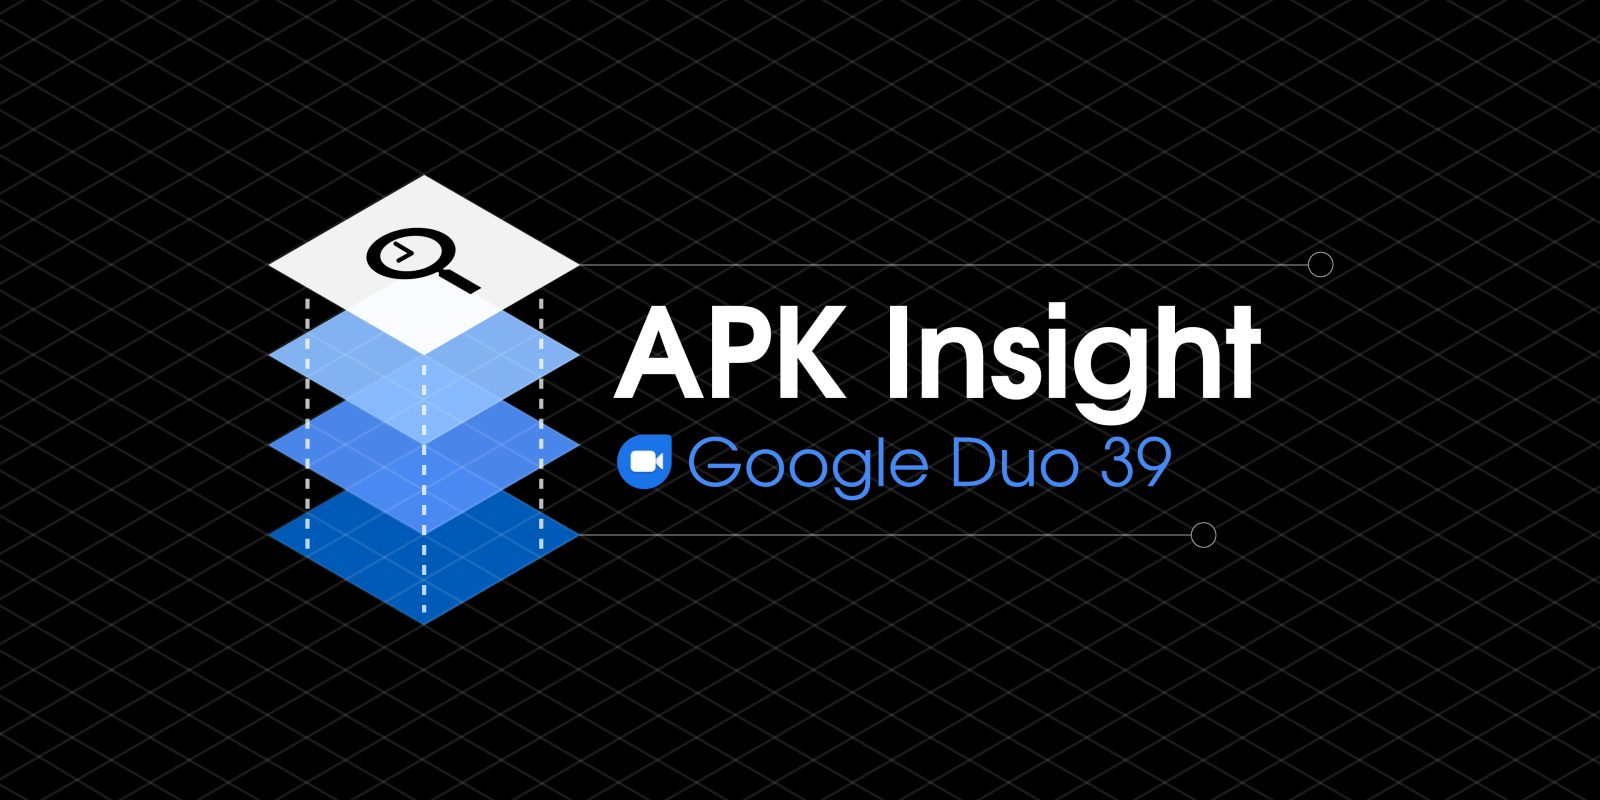 Google Duo 39 features new Material icon, preps homescreen contact  shortcuts & more rewards [APK Insight]